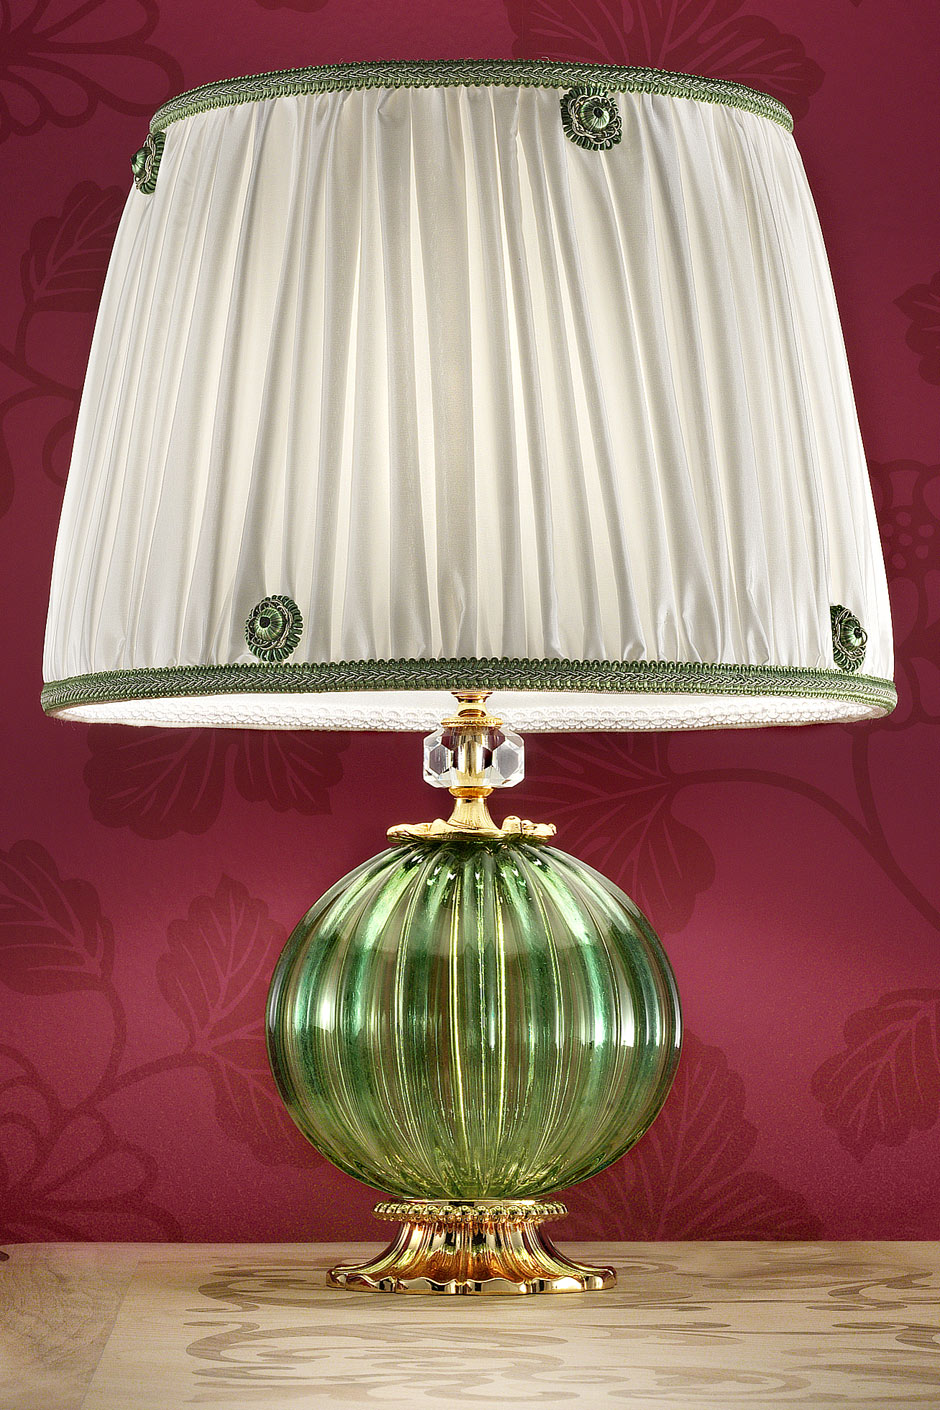 lampe verre murano vert abat jour vert taffetas de soie masiero sp cialiste du lustre en. Black Bedroom Furniture Sets. Home Design Ideas